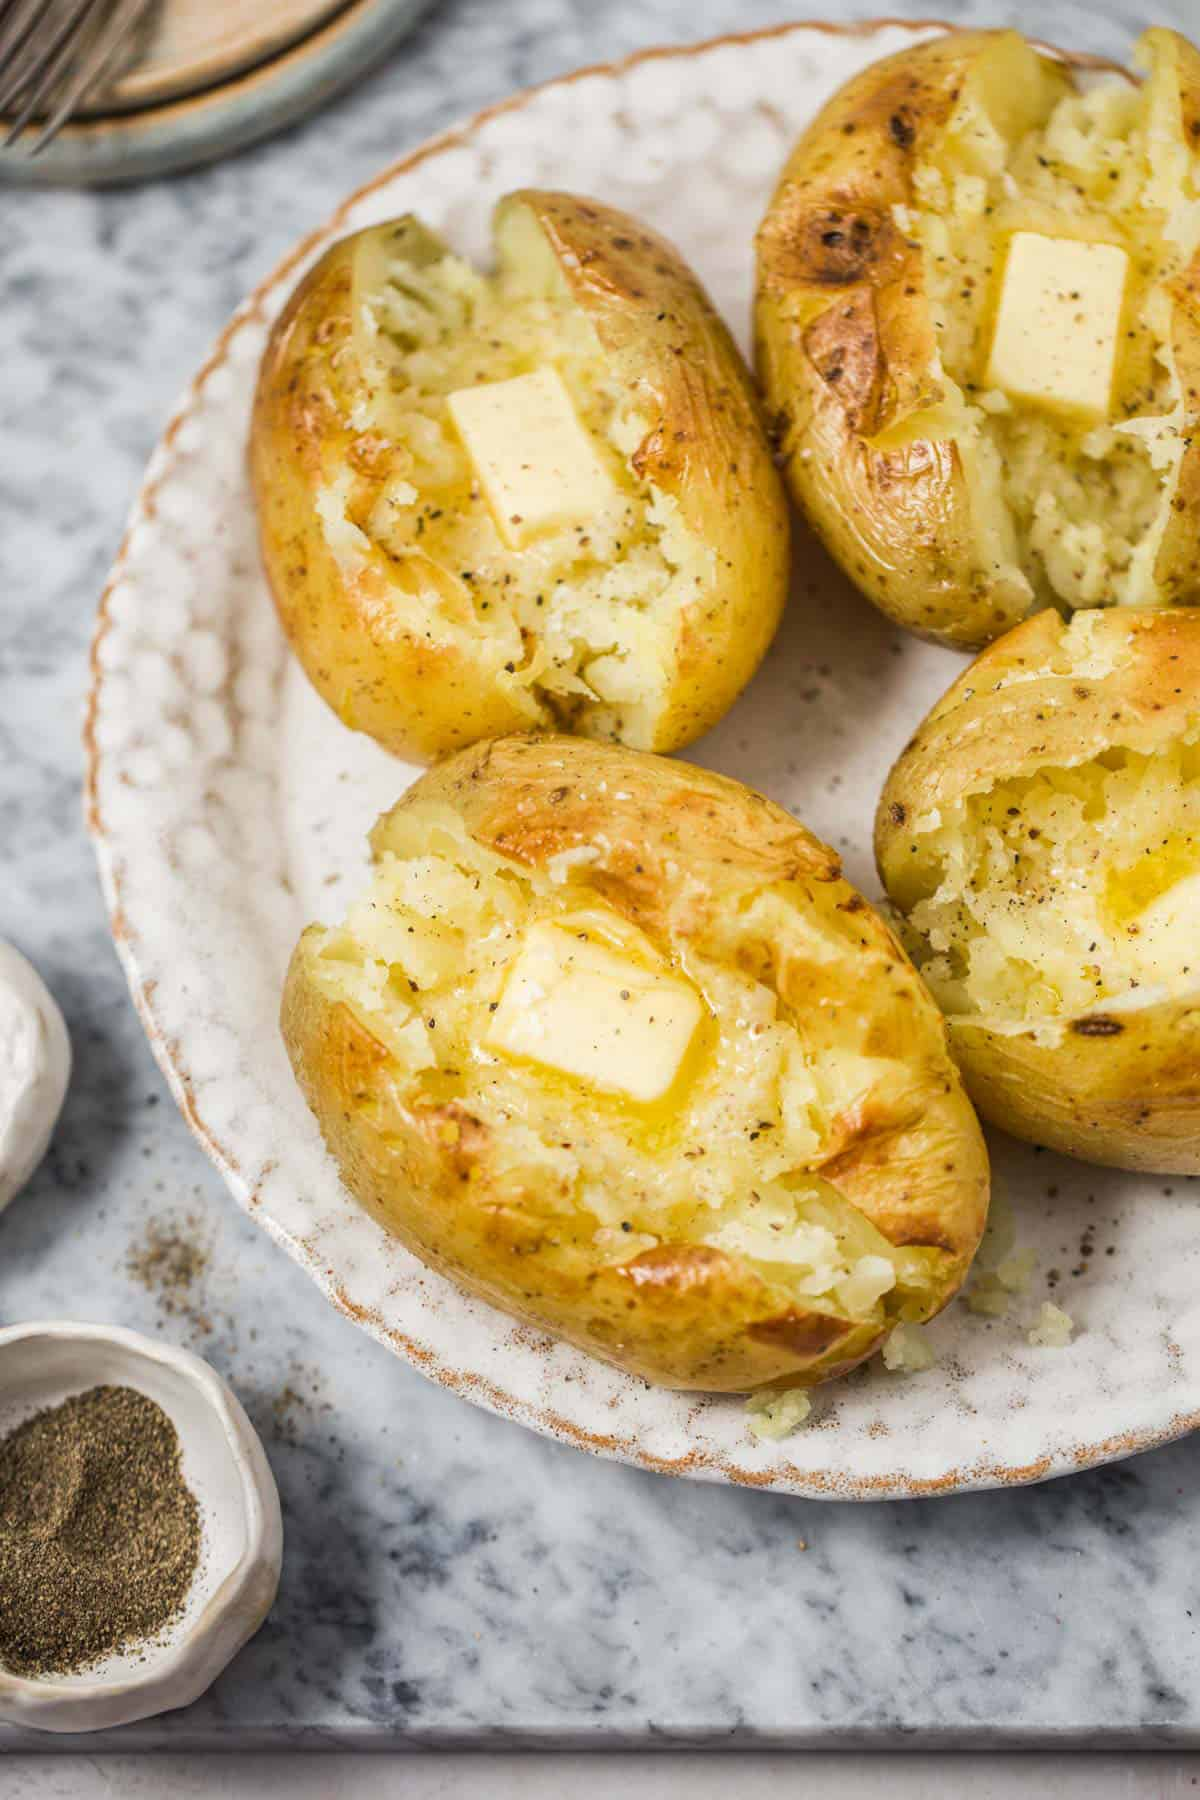 Baked potatoes topped with butter